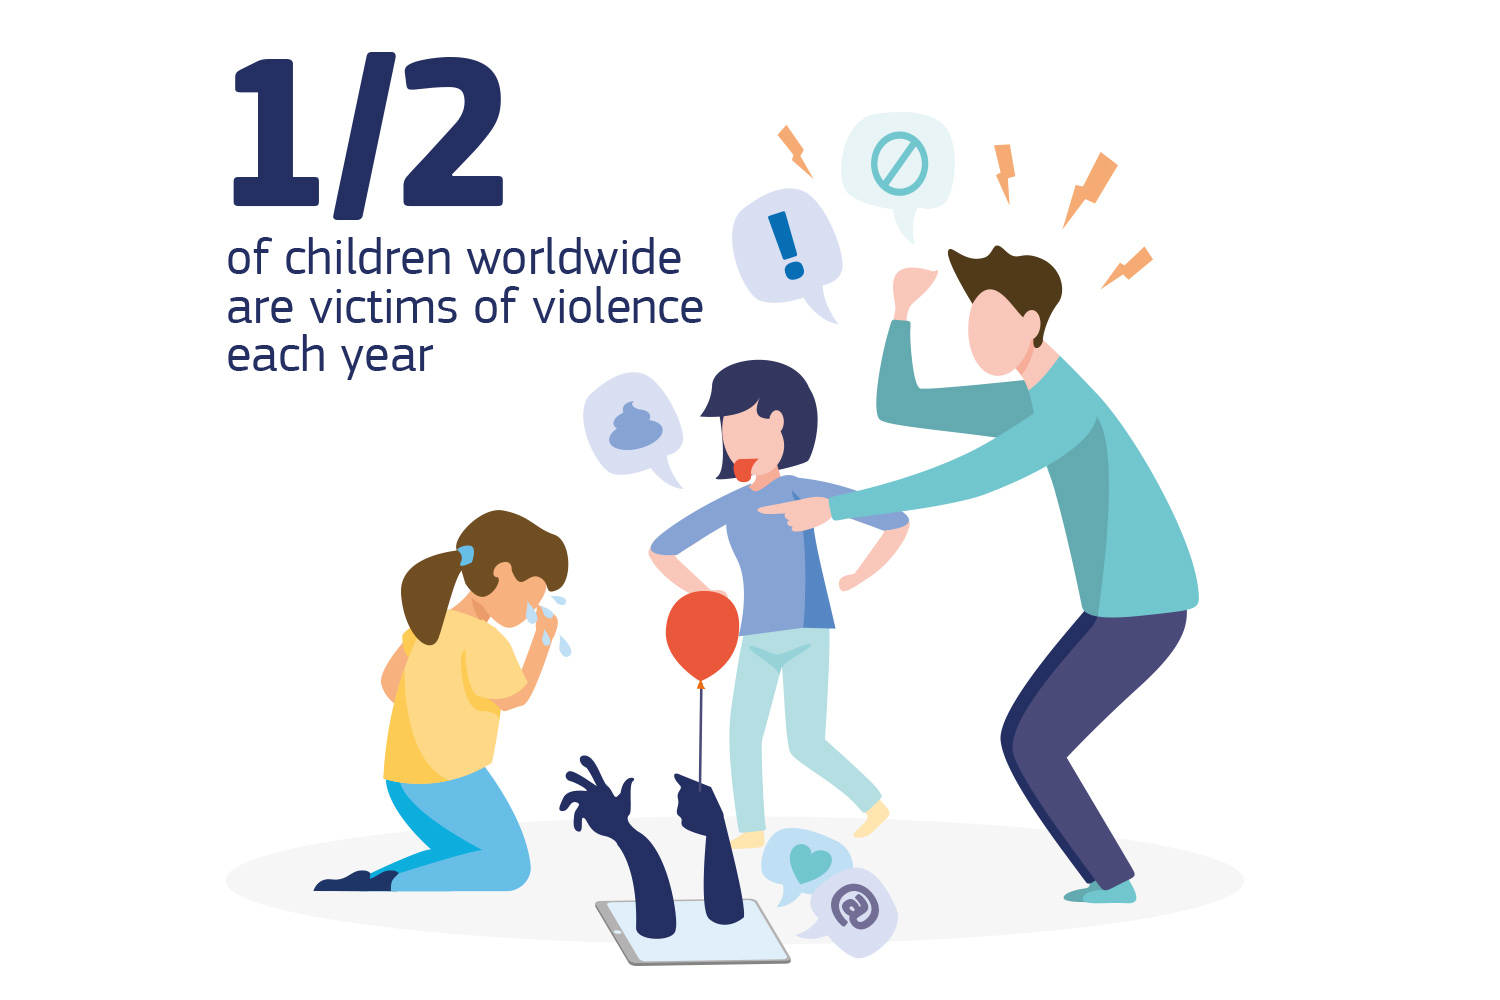 1/2 of children worldwide are victims of violence each year